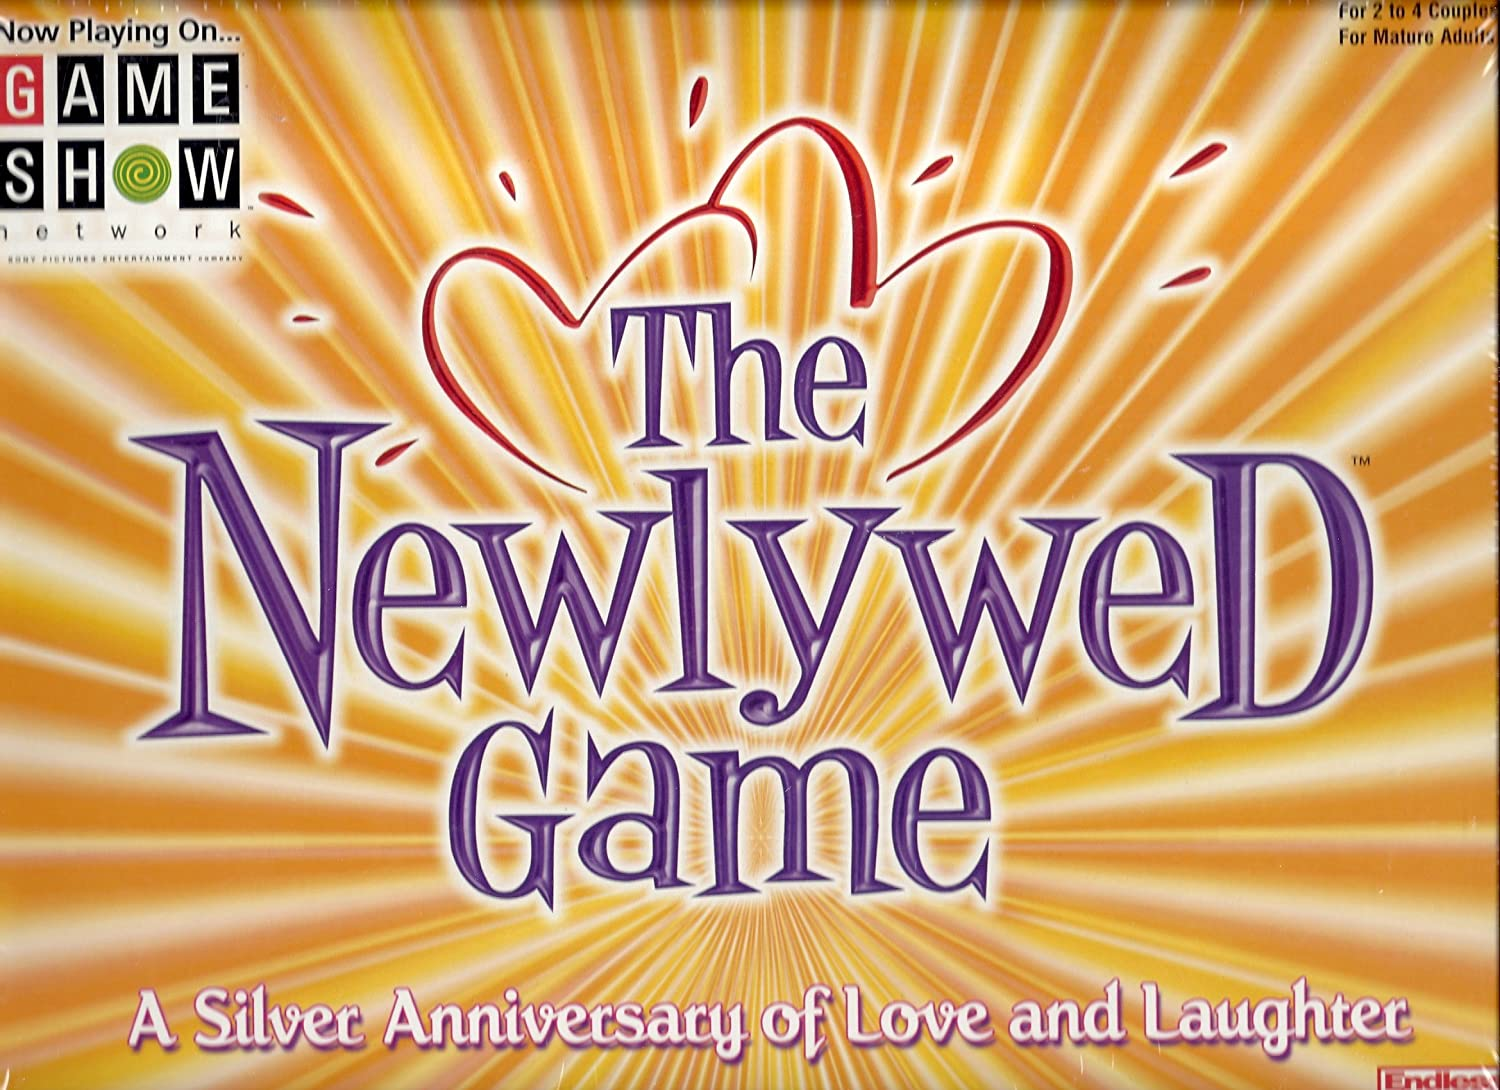 2 player newlywed game online